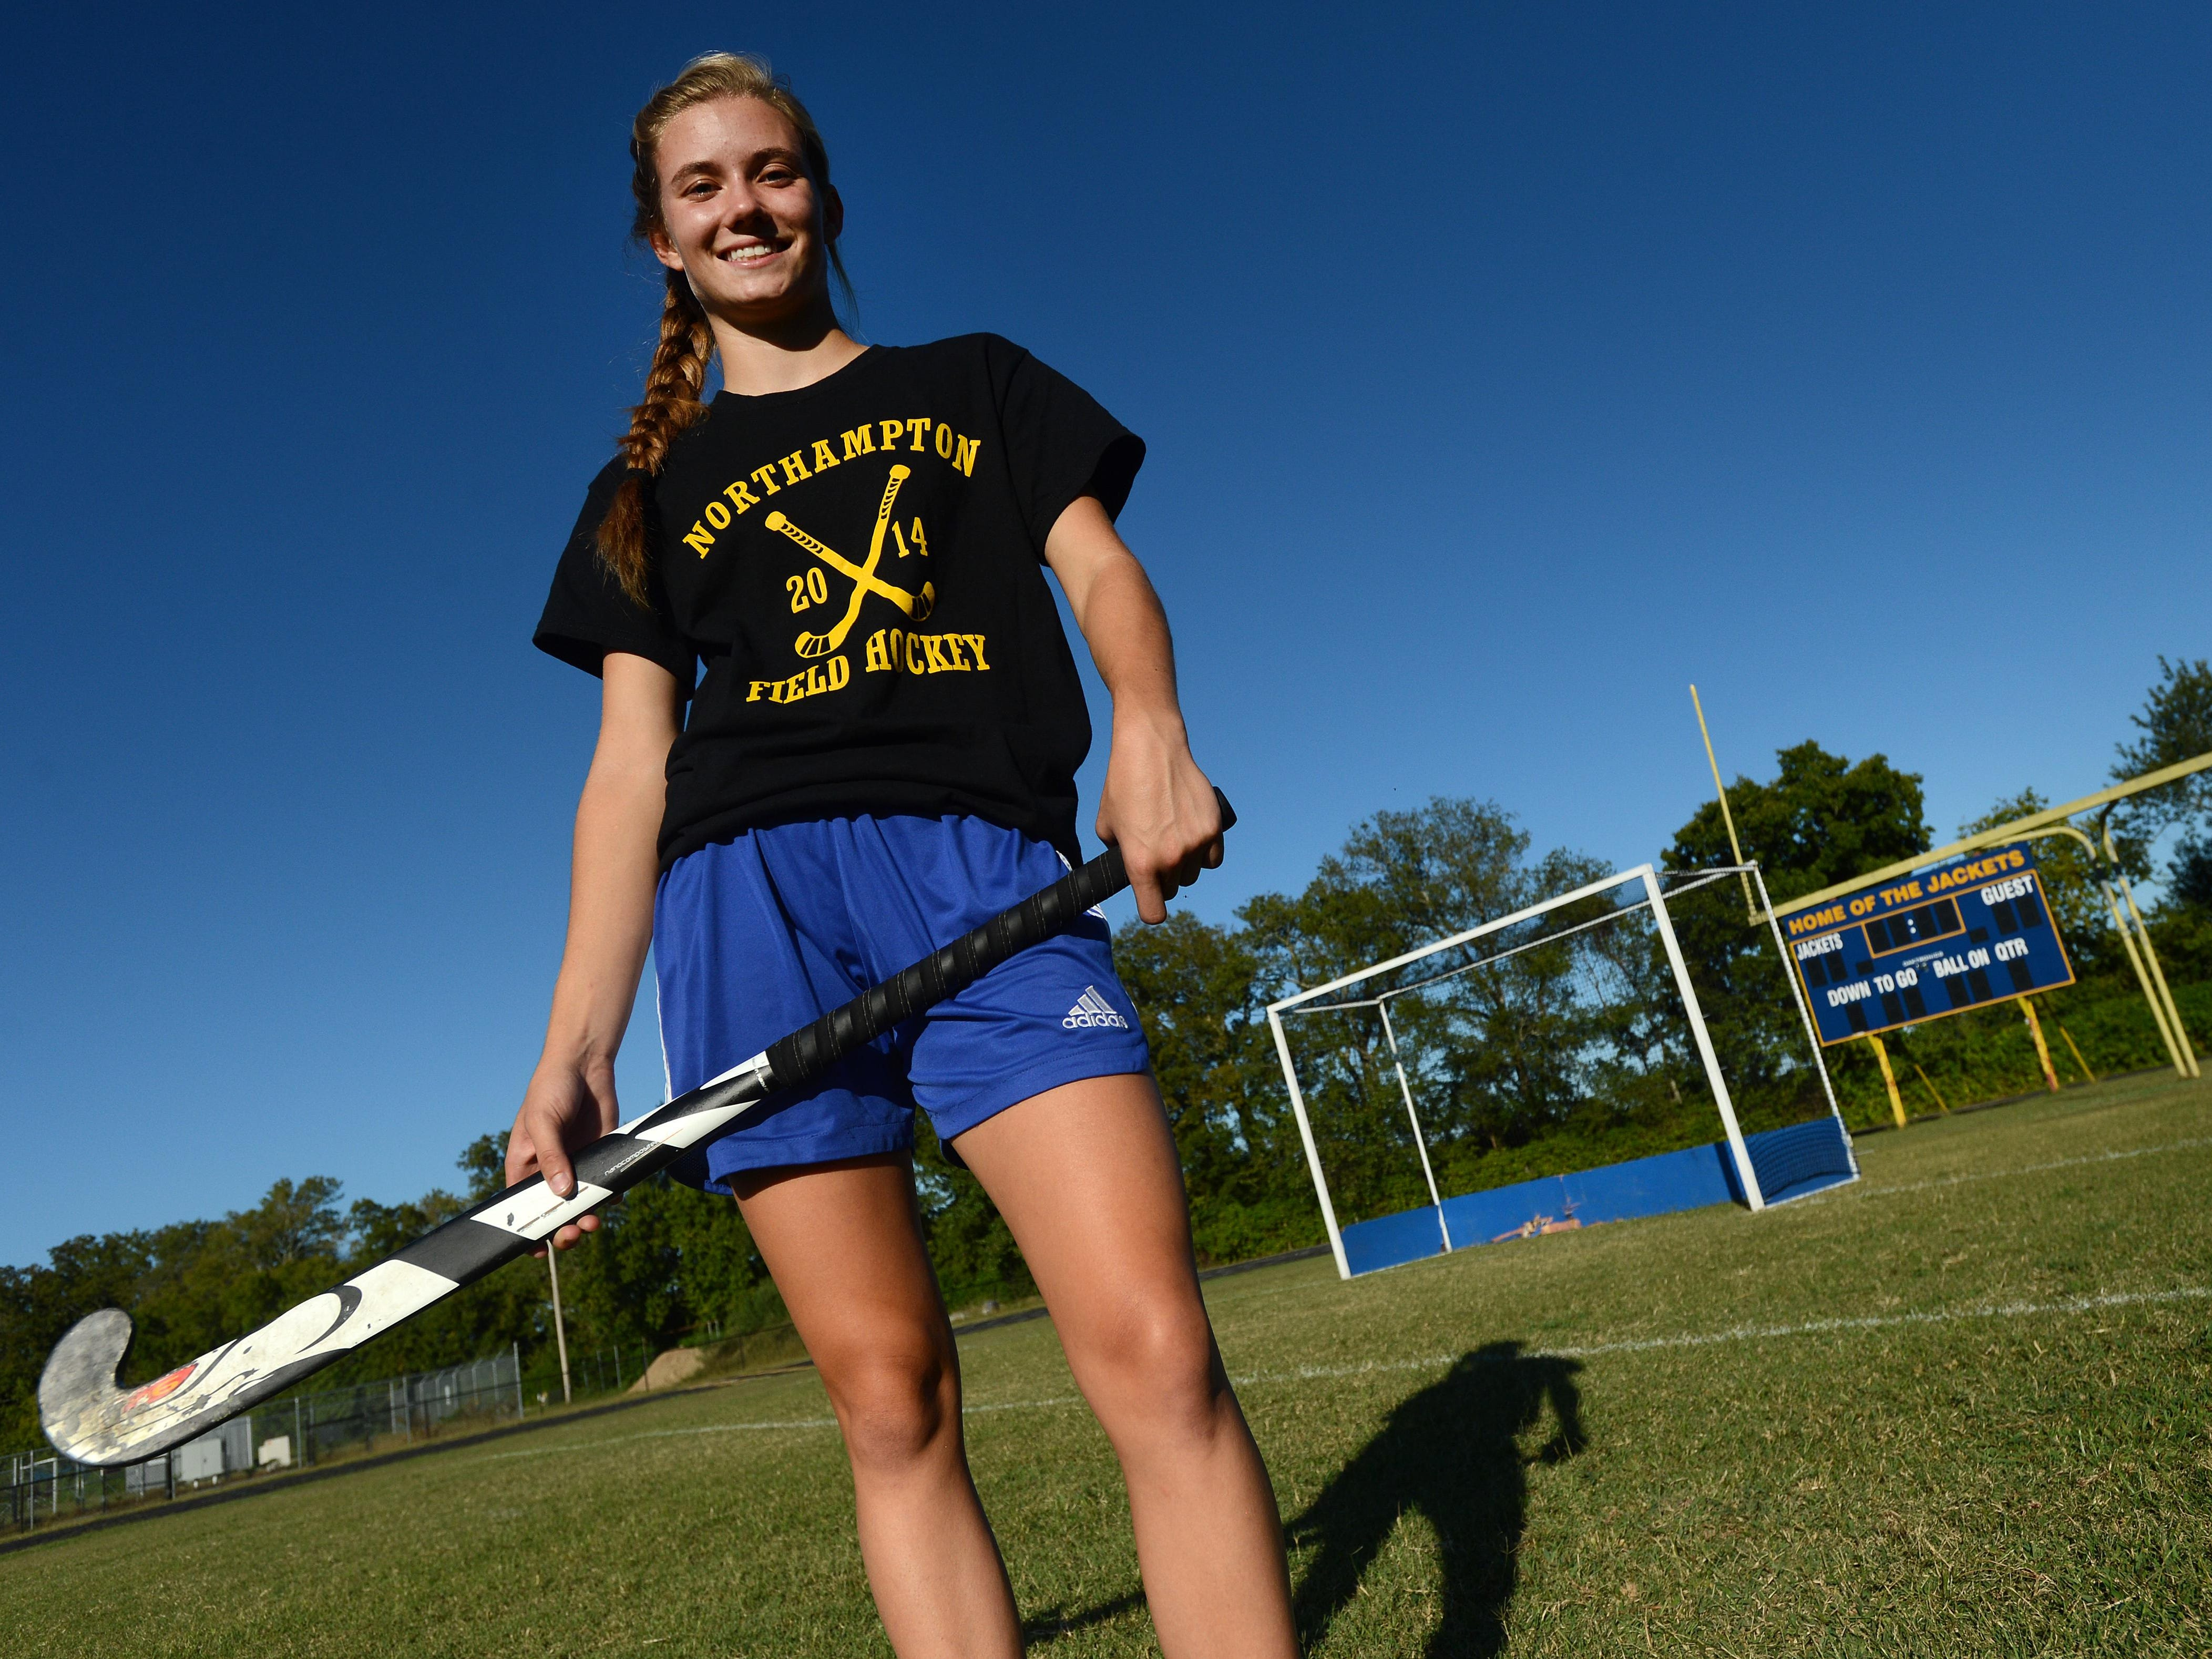 Northampton field hockey's Erica Head poses for a portrait after practice in Eastville on Tuesday, Sept. 15, 2015. Head is a senior captain for the Yellow Jackets this season and has been playng field hockey for the school since the 8th grade.